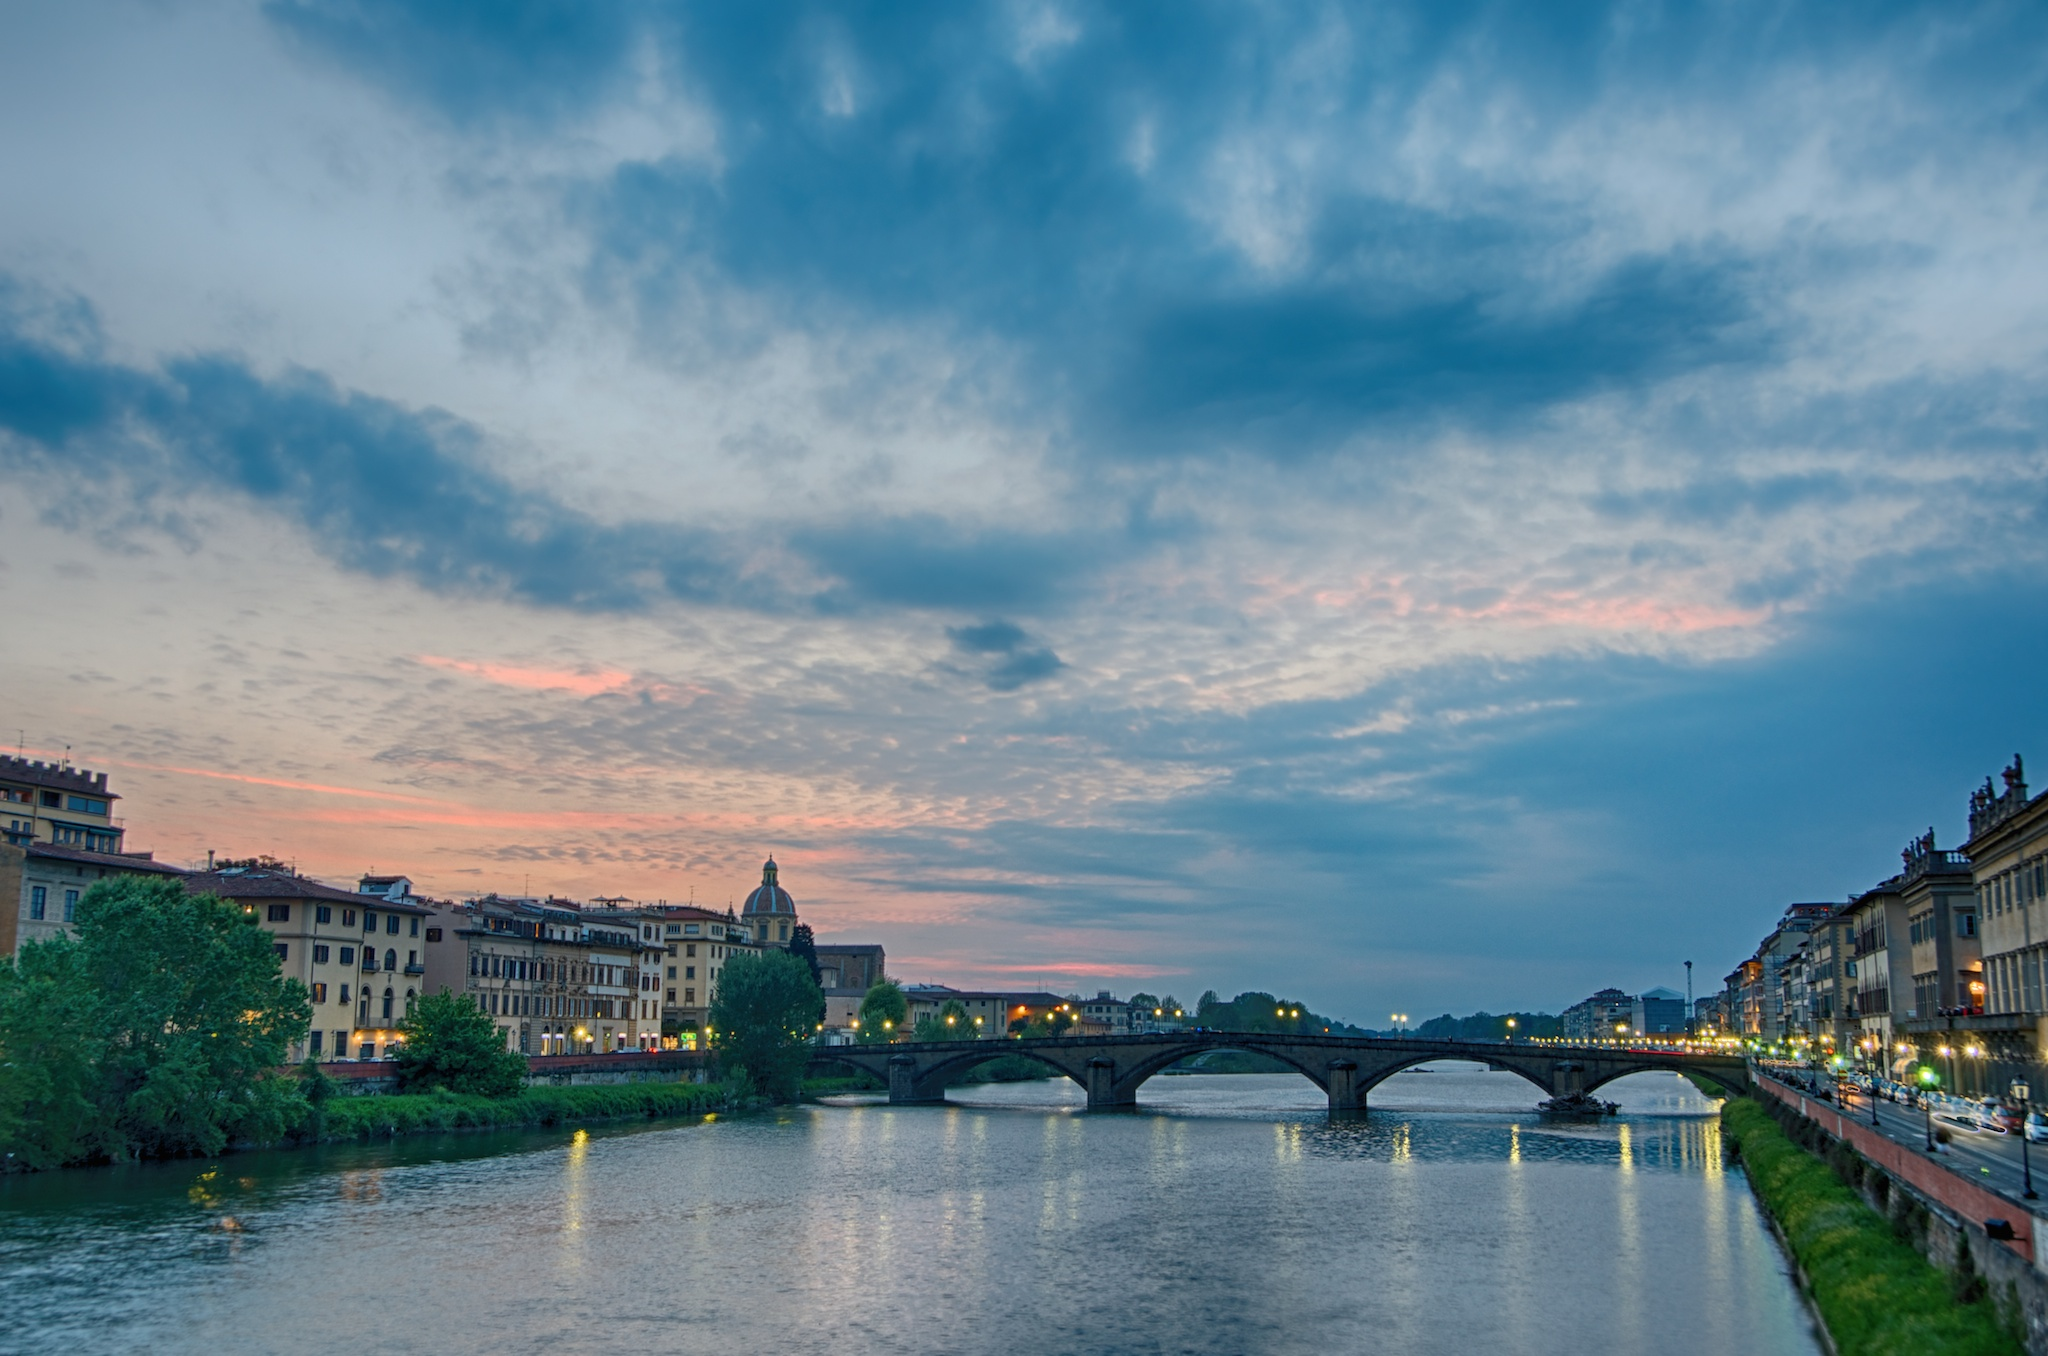 A shot of the Ponte alla Carraia I tried to save in post. Lousy, Sky is interesting, but again, no action in the water.